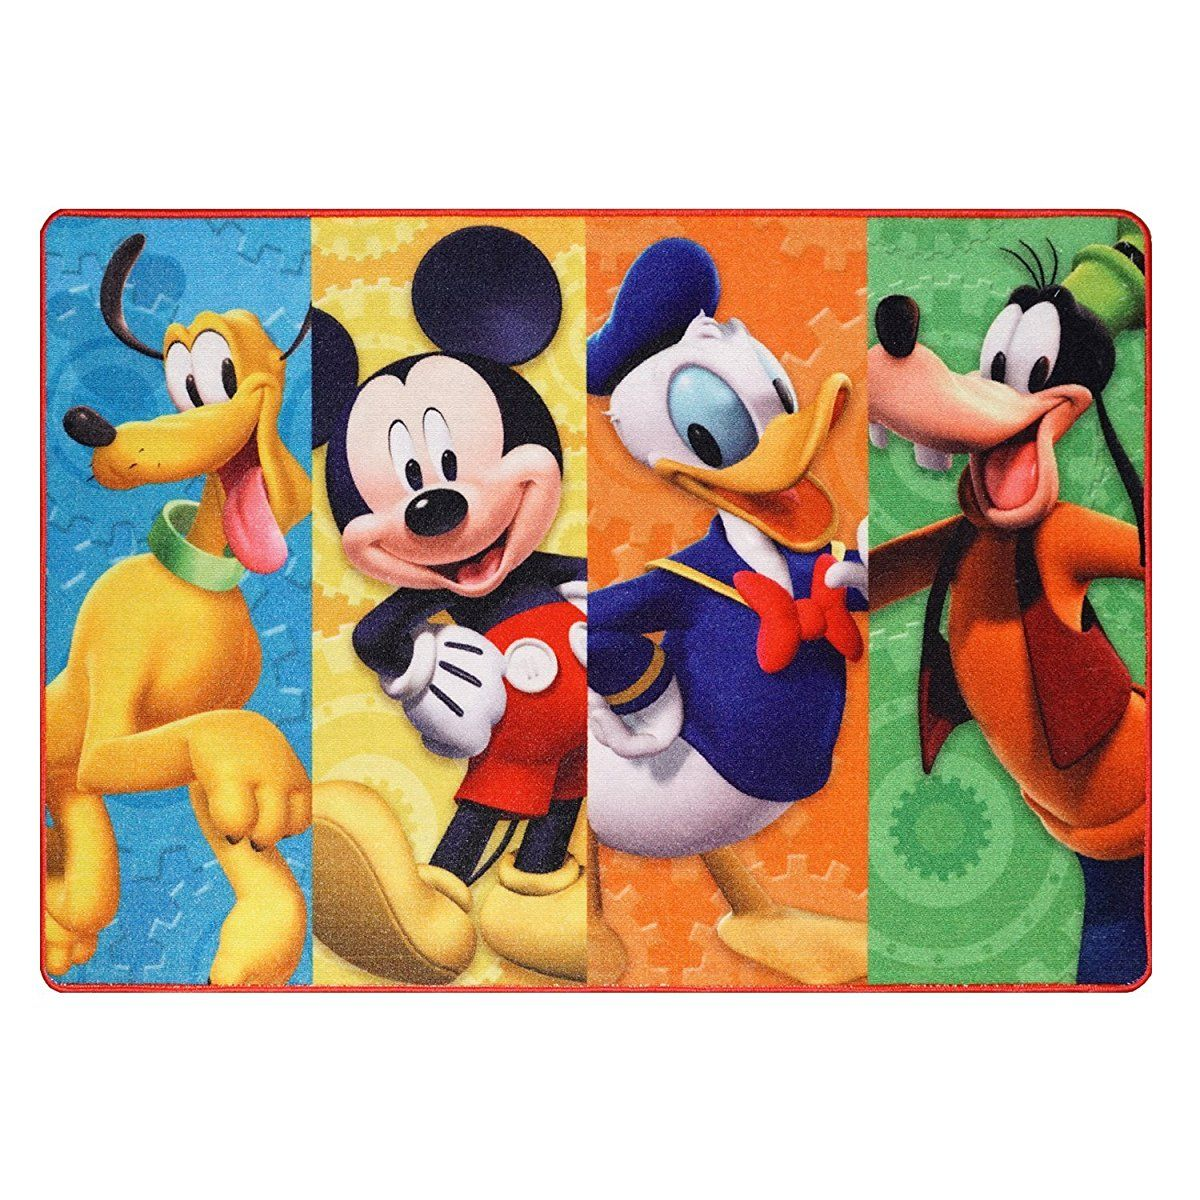 Disney Mickey Mouse Clubhouse Rug Hd Digital Mmch Kids Room Decor Bedding Area Rugs 40 X54 Standard In 2020 Kids Area Rugs Mickey Mouse Room Mickey Mouse Clubhouse